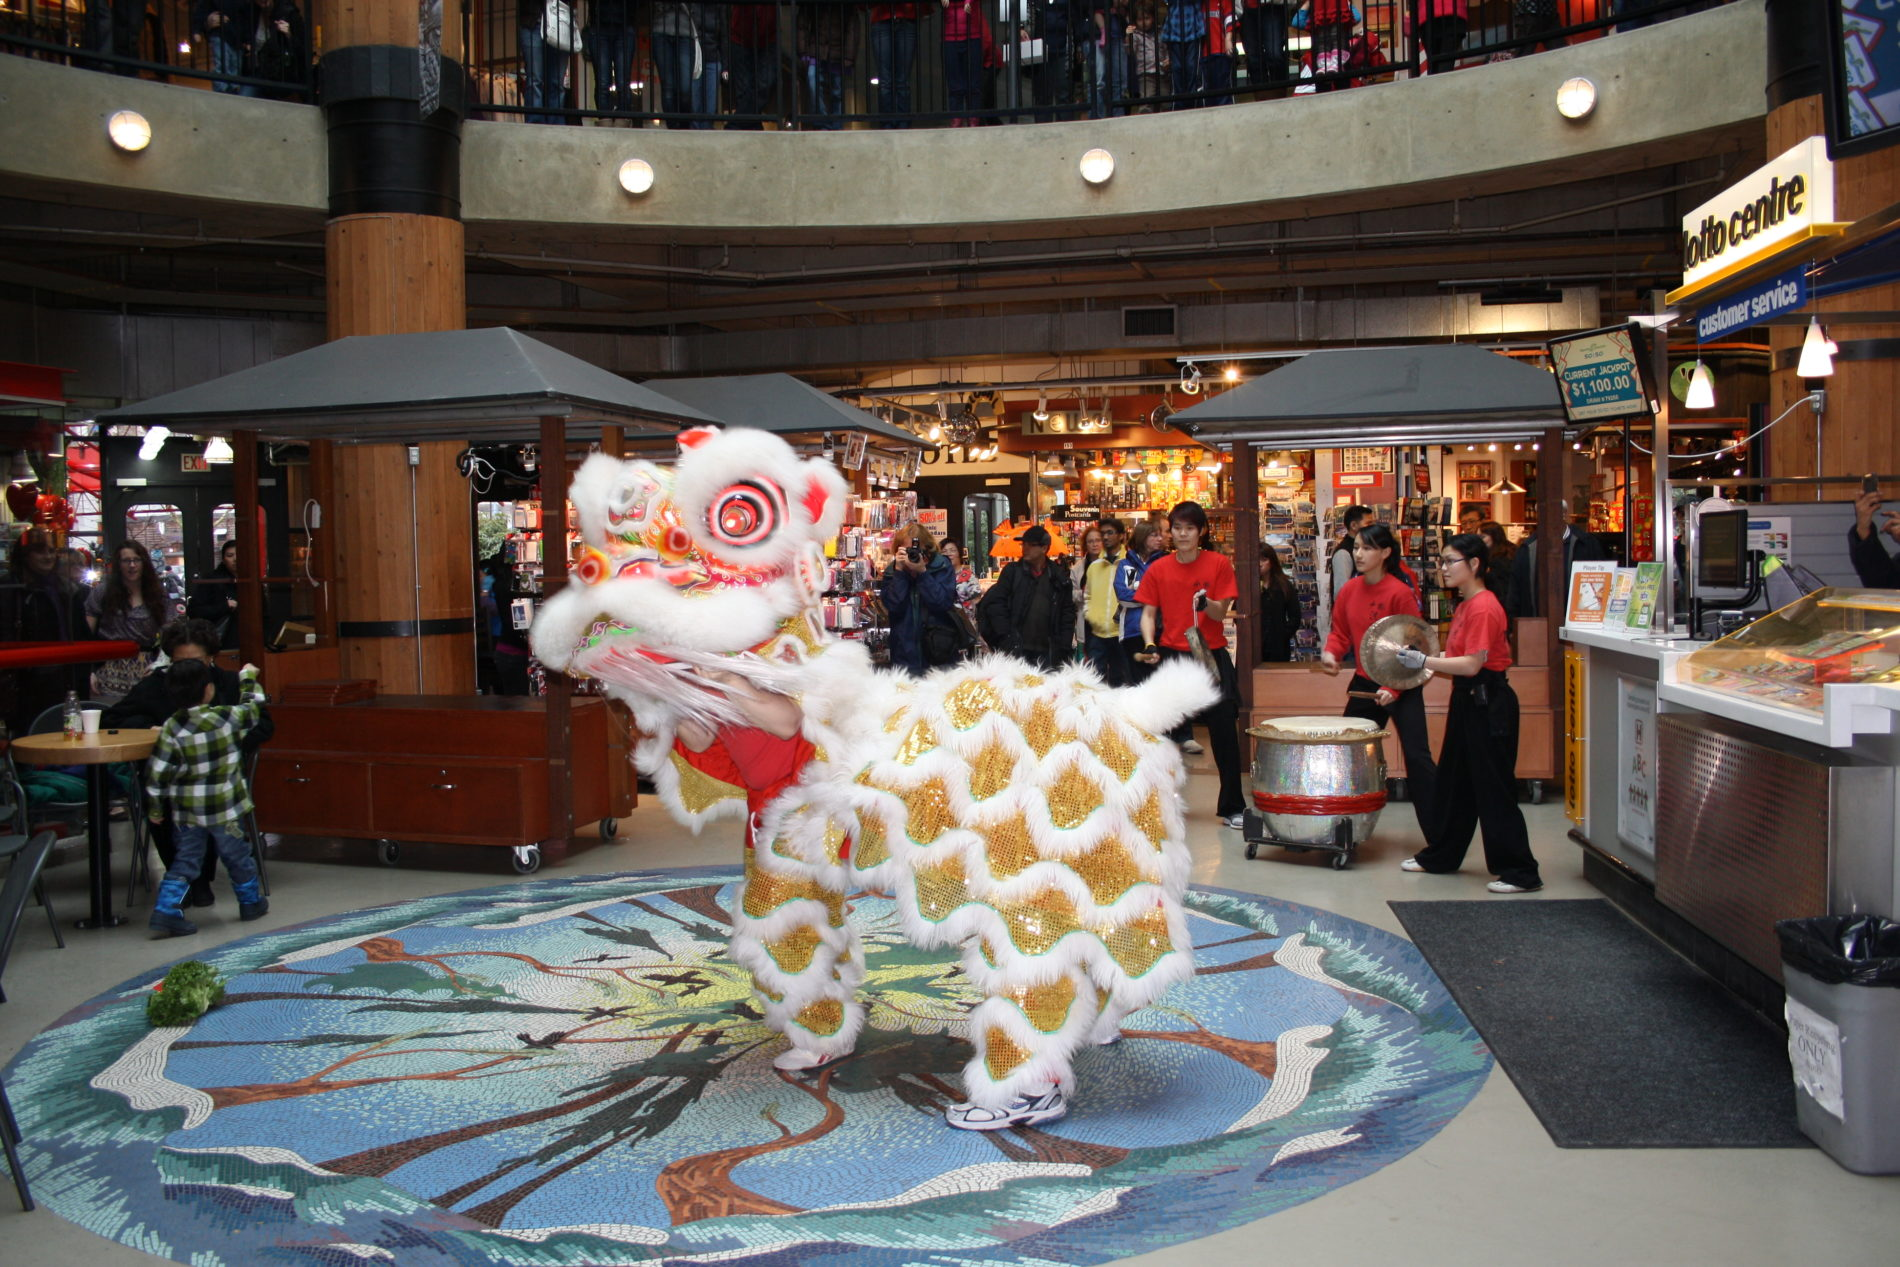 Lunar New Year at the Market